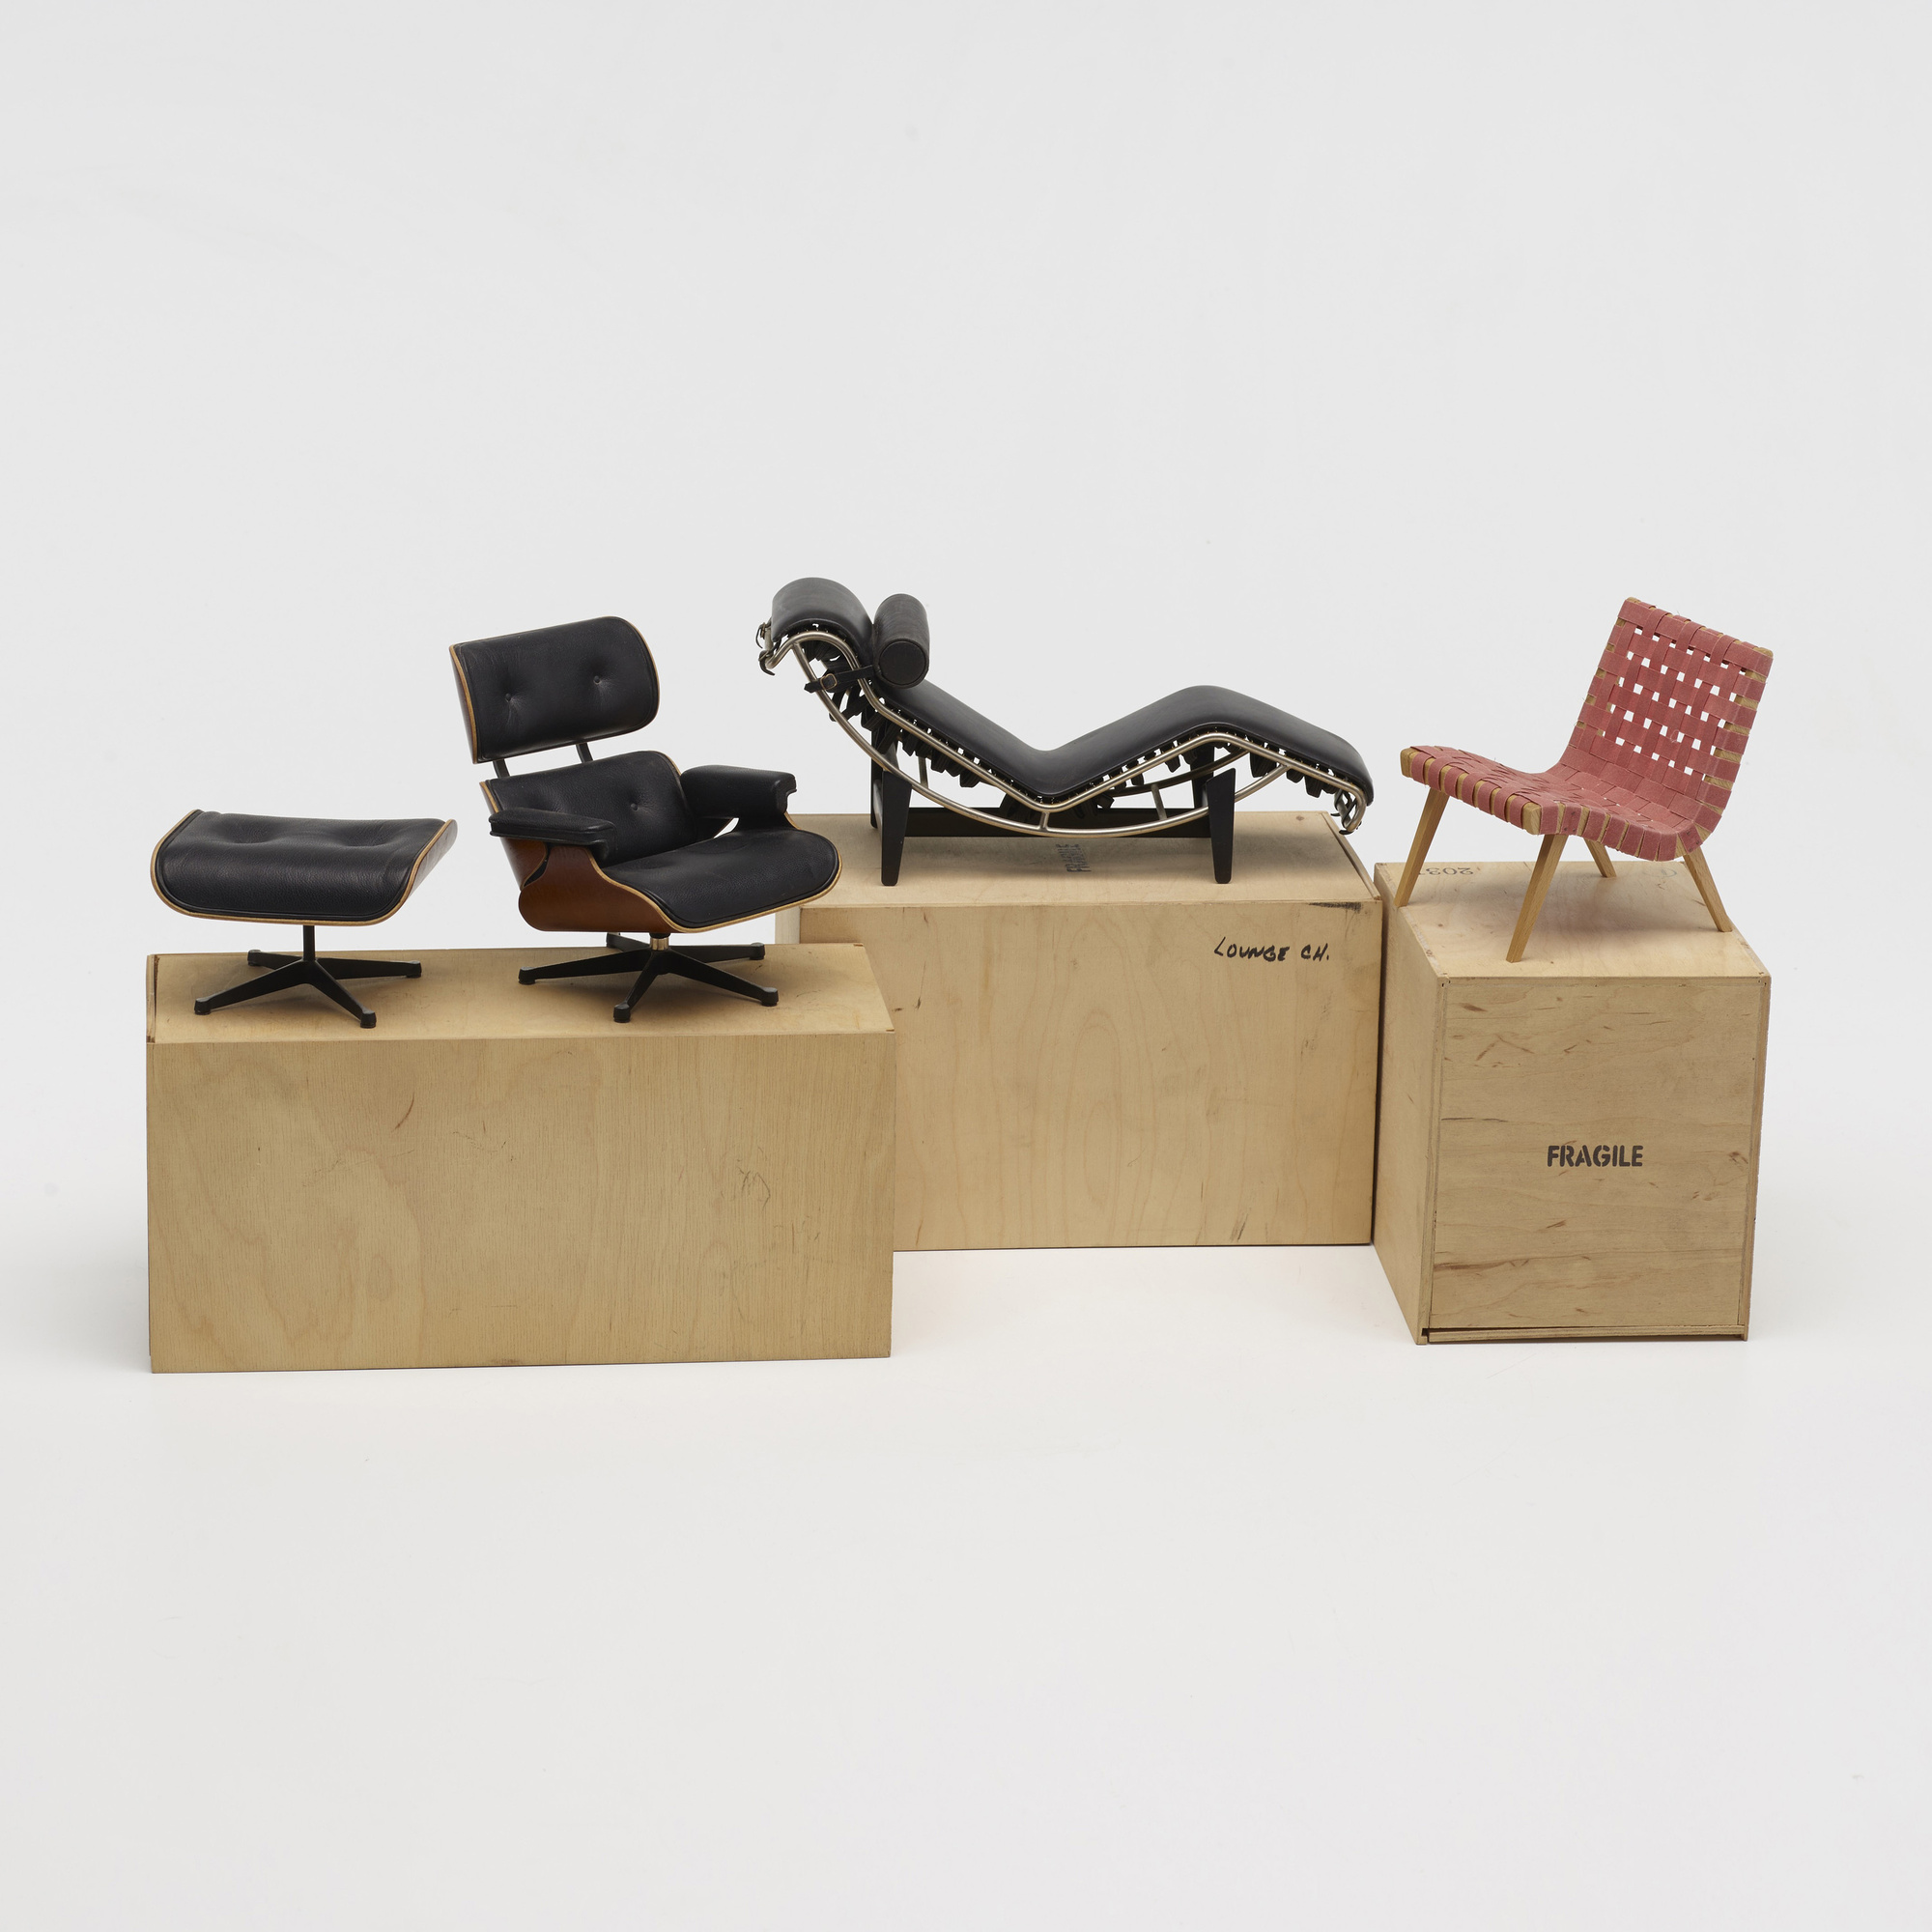 776: Vitra / collection of three miniature chairs (2 of 3)